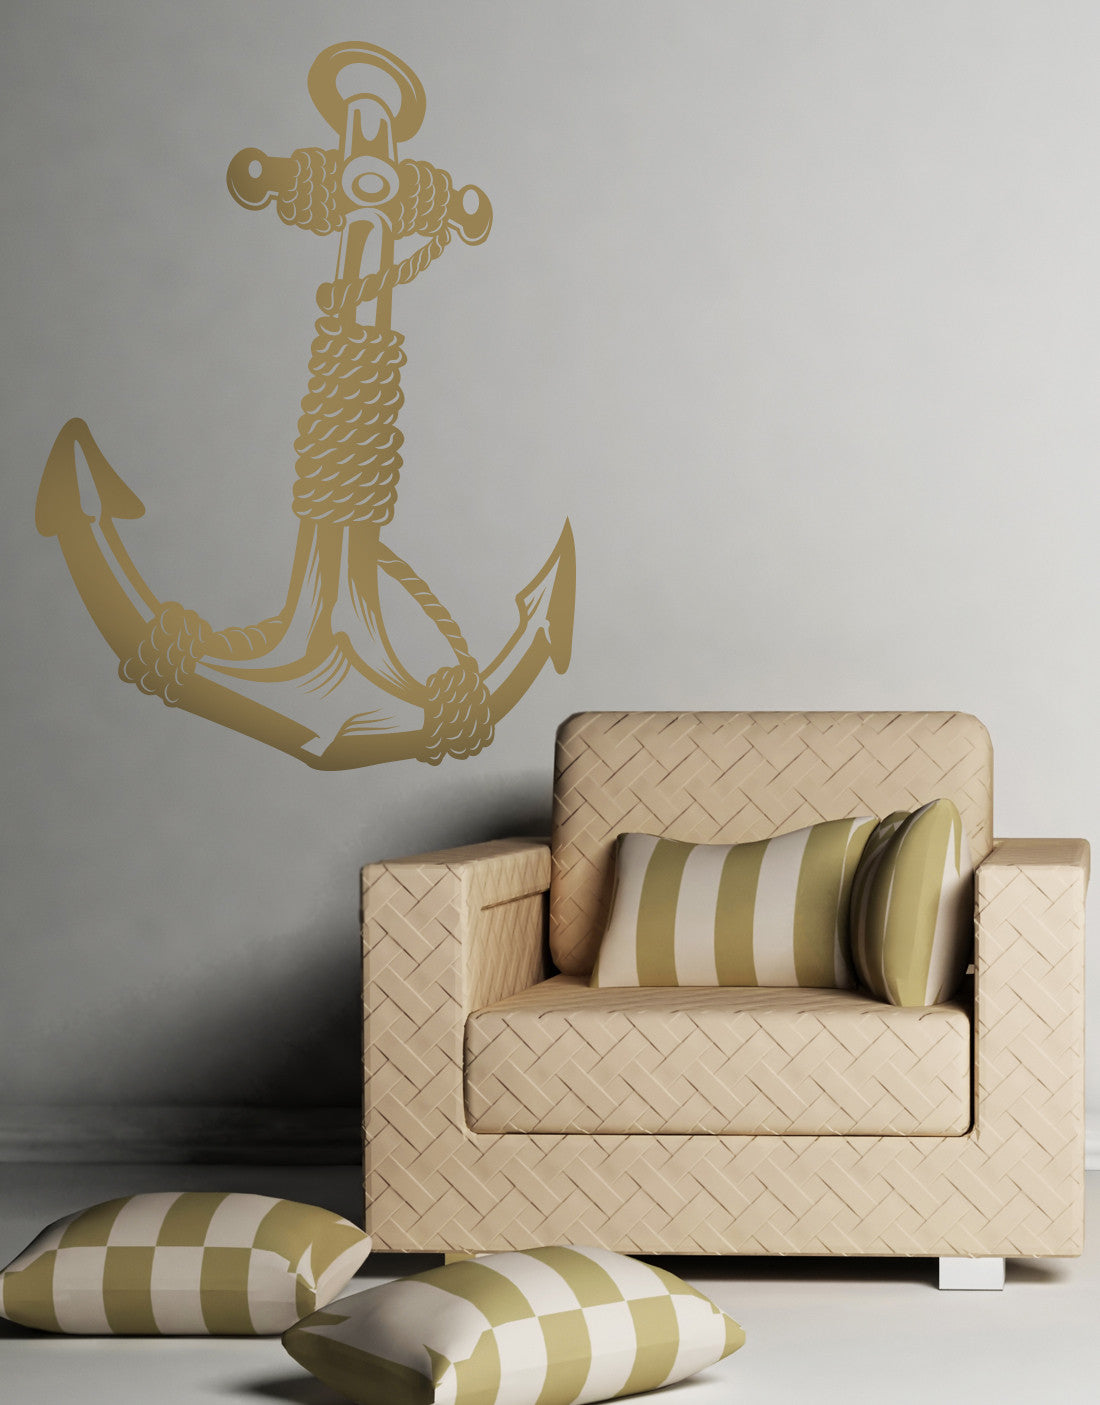 Anchor with rope vinyl wall decal sticker osmb168 amipublicfo Image collections